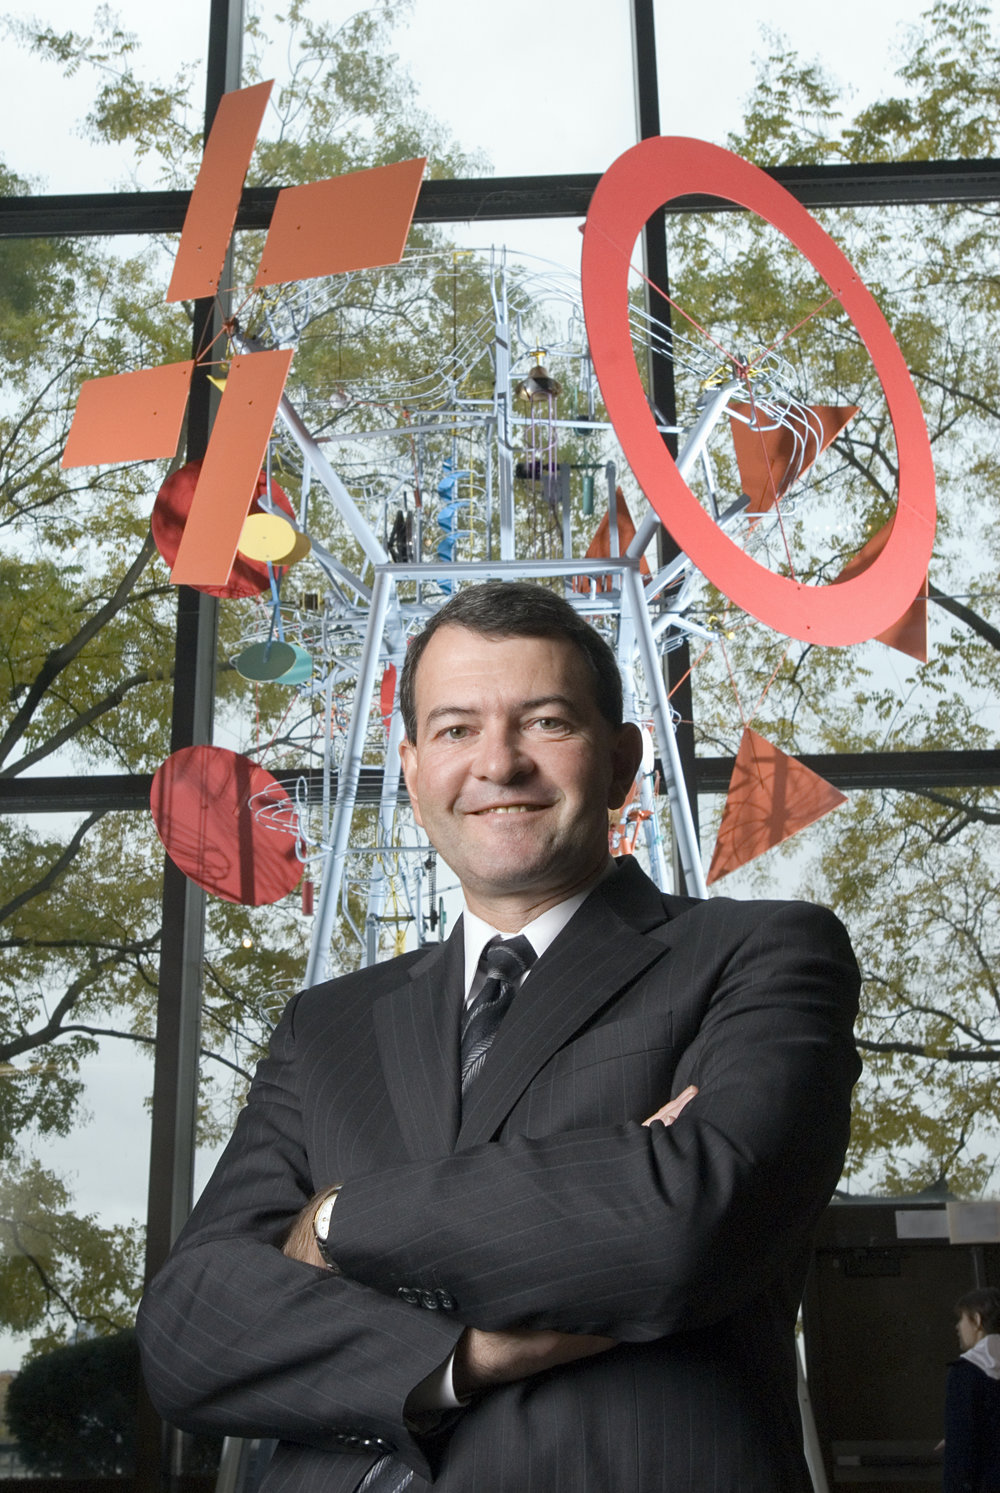 Ioannis Miaaoulis, President, Museum of Science, Boston